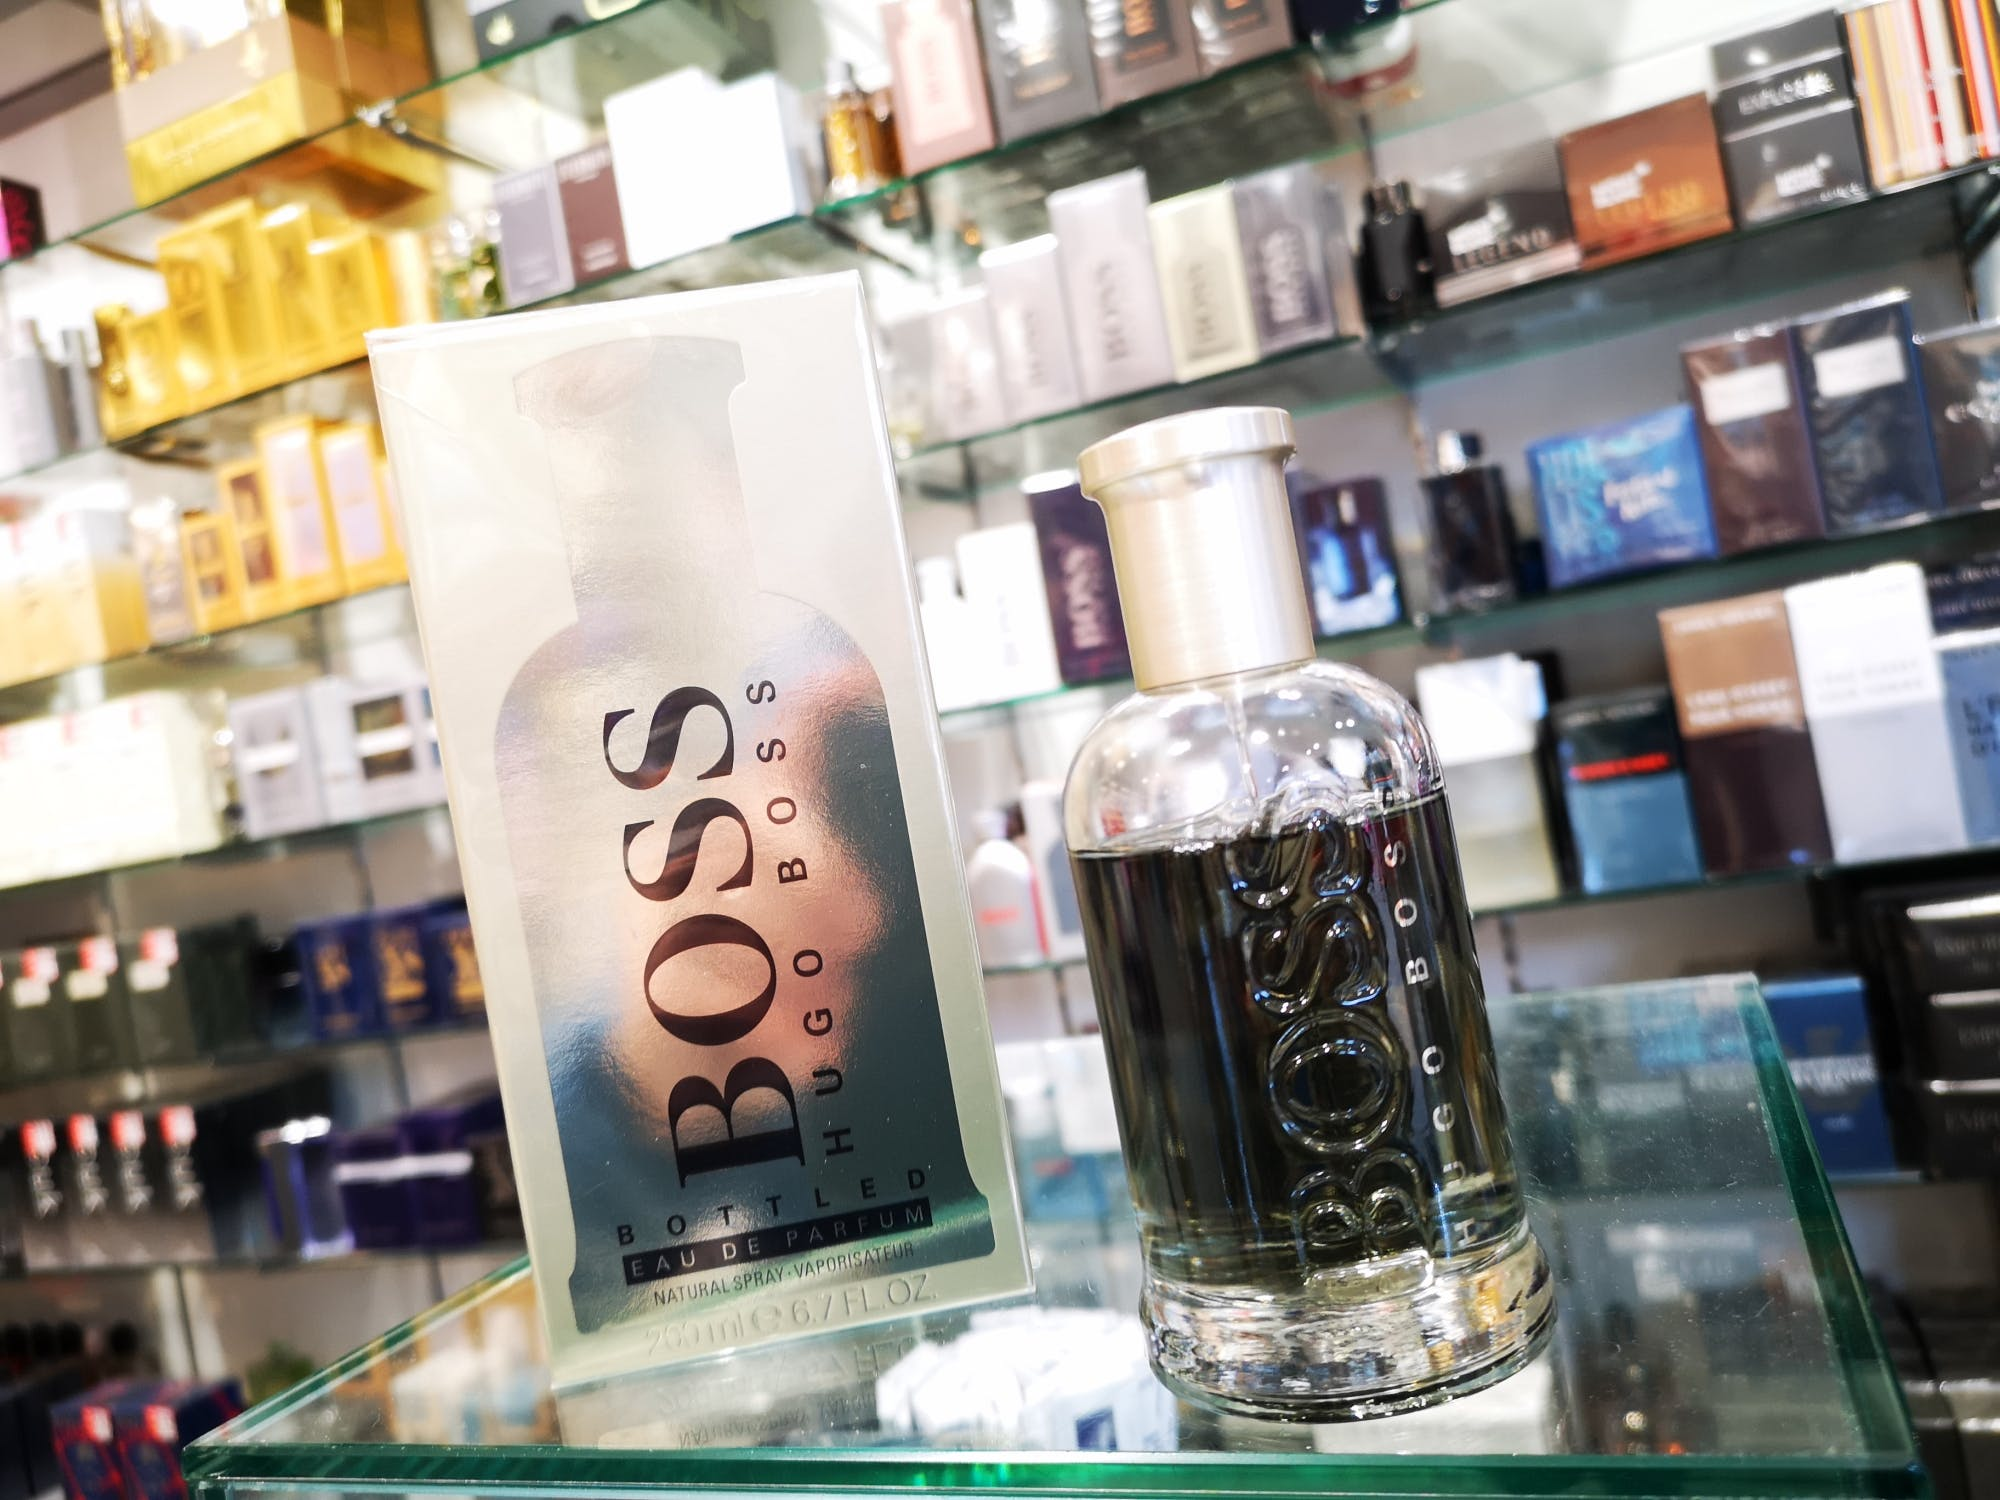 Boss is crafted for men with cinnamon oil as an eau de parfum meaning it lasts longer! From £54.50 at The Fragrance Shop.